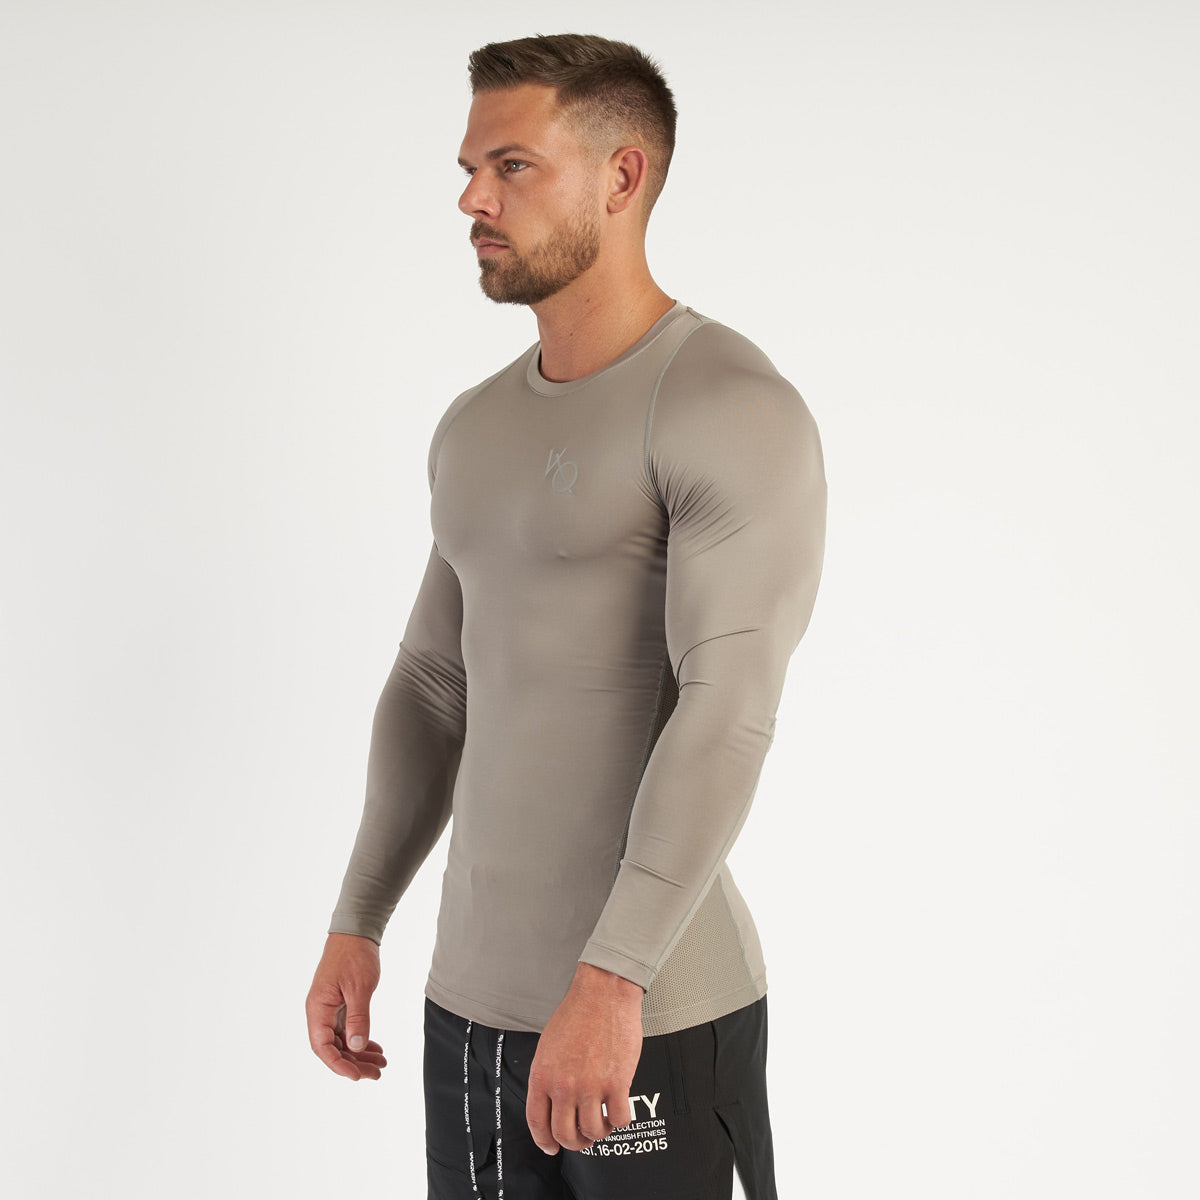 Vanquish Utility Men's Khaki Long Sleeved Compression T Shirt